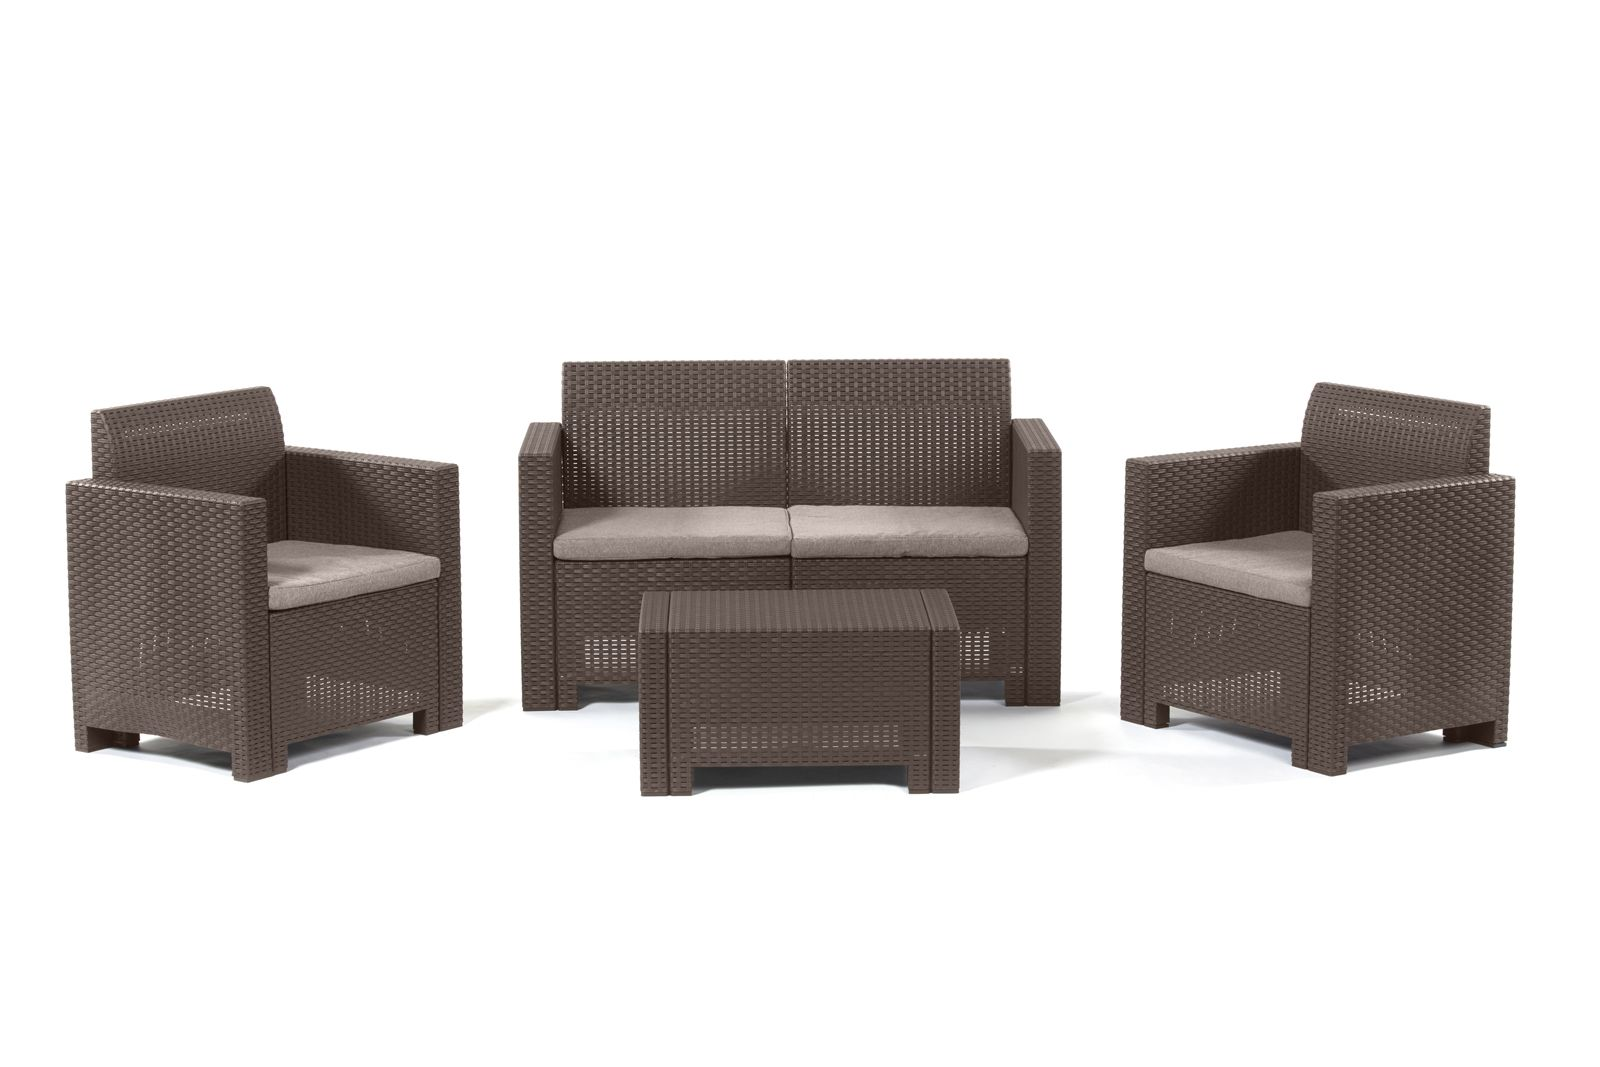 Bica Outdoor Furniture Simple to buy and assemble